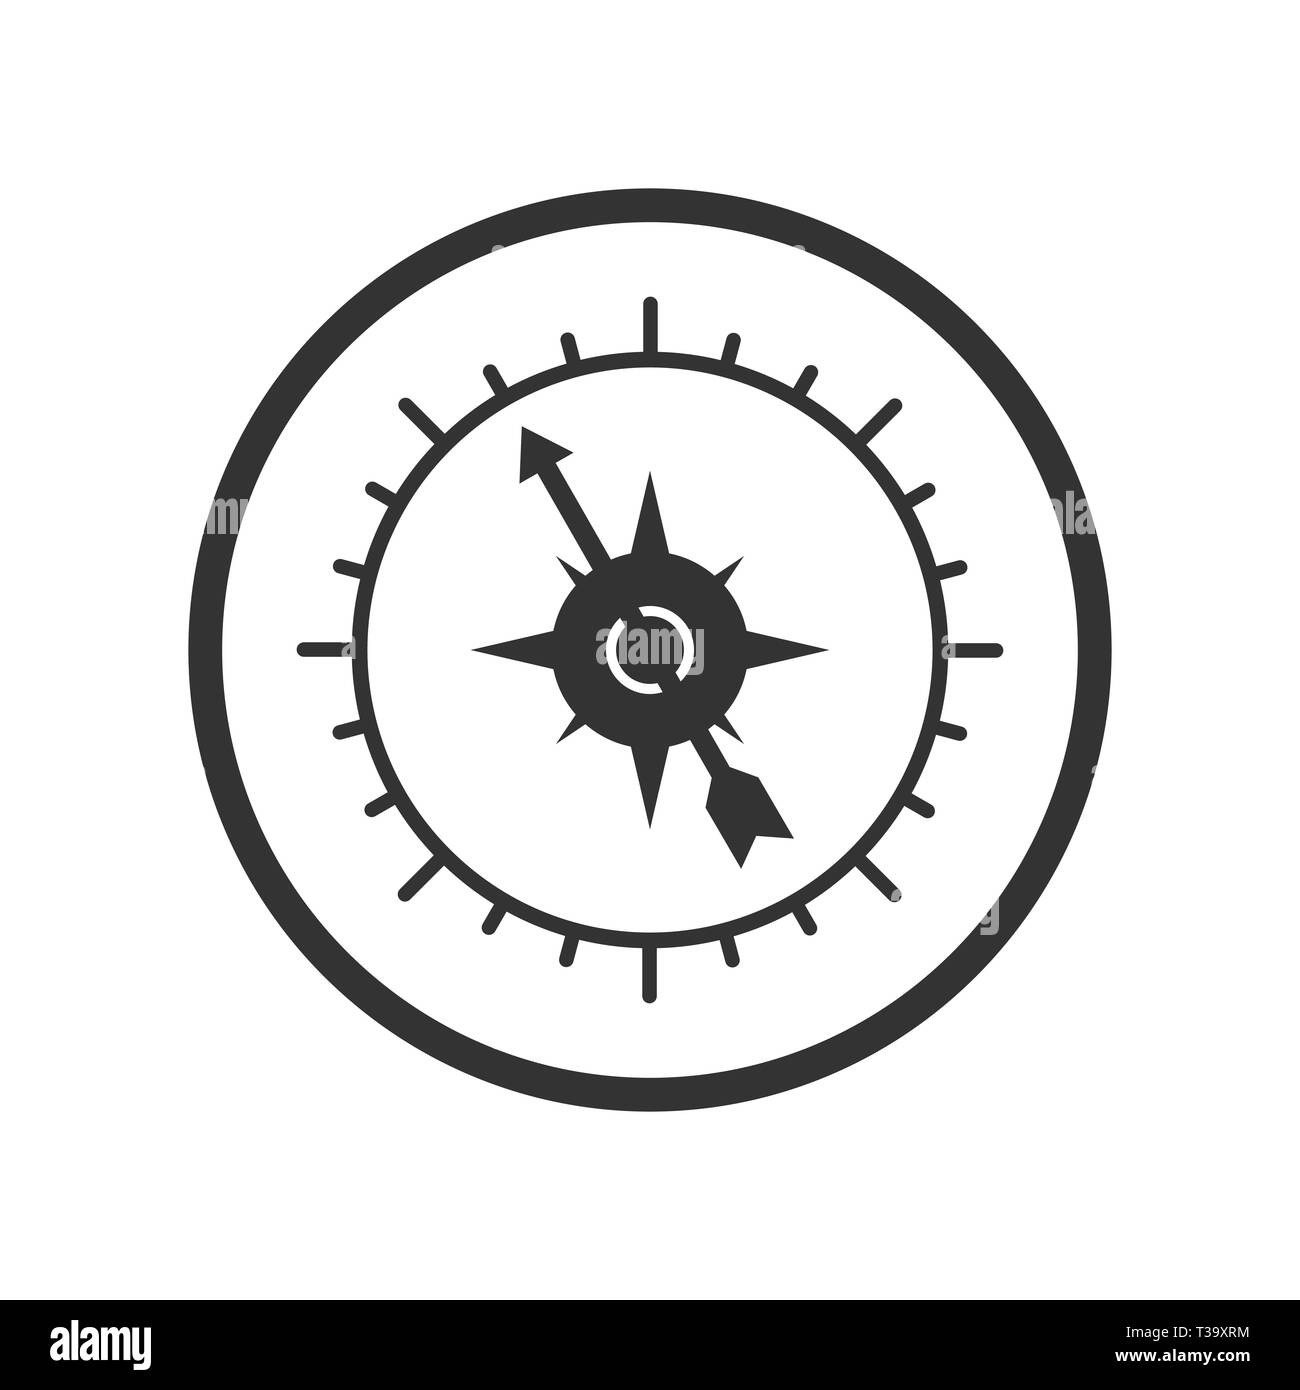 Compass icon, simple design for website or app, flat design. - Stock Vector